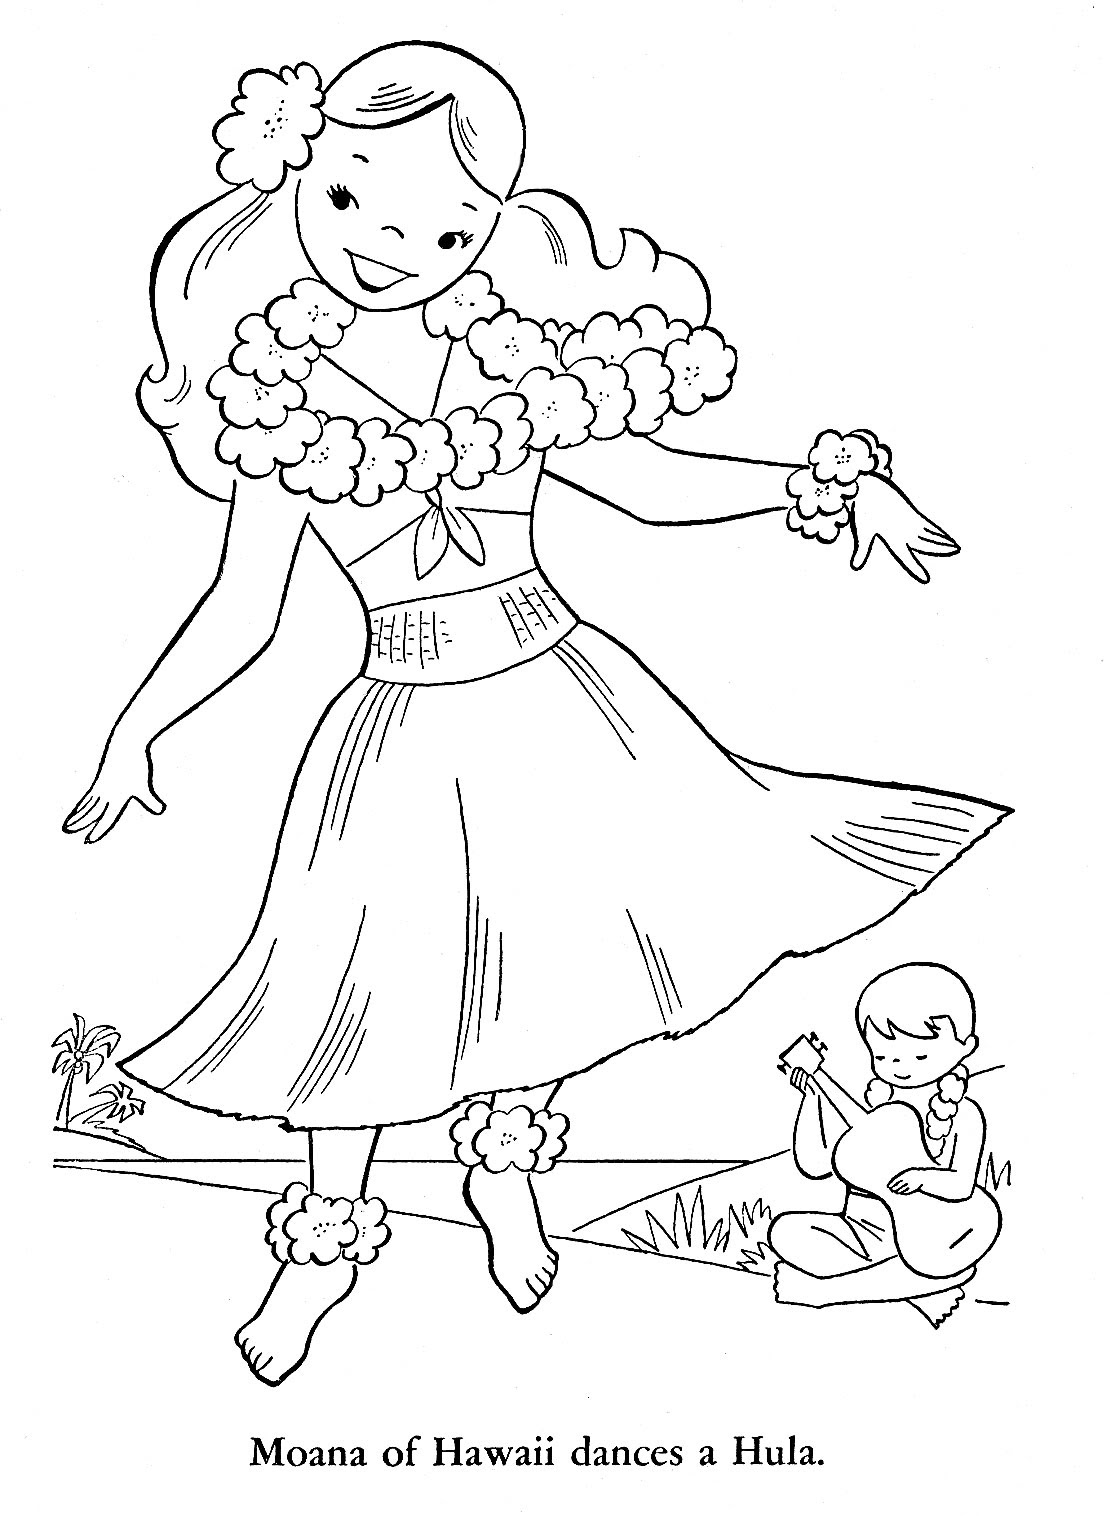 Free Adult Coloring Pages From Hawai'i Artists (and Our Magazine ... | 1516x1110